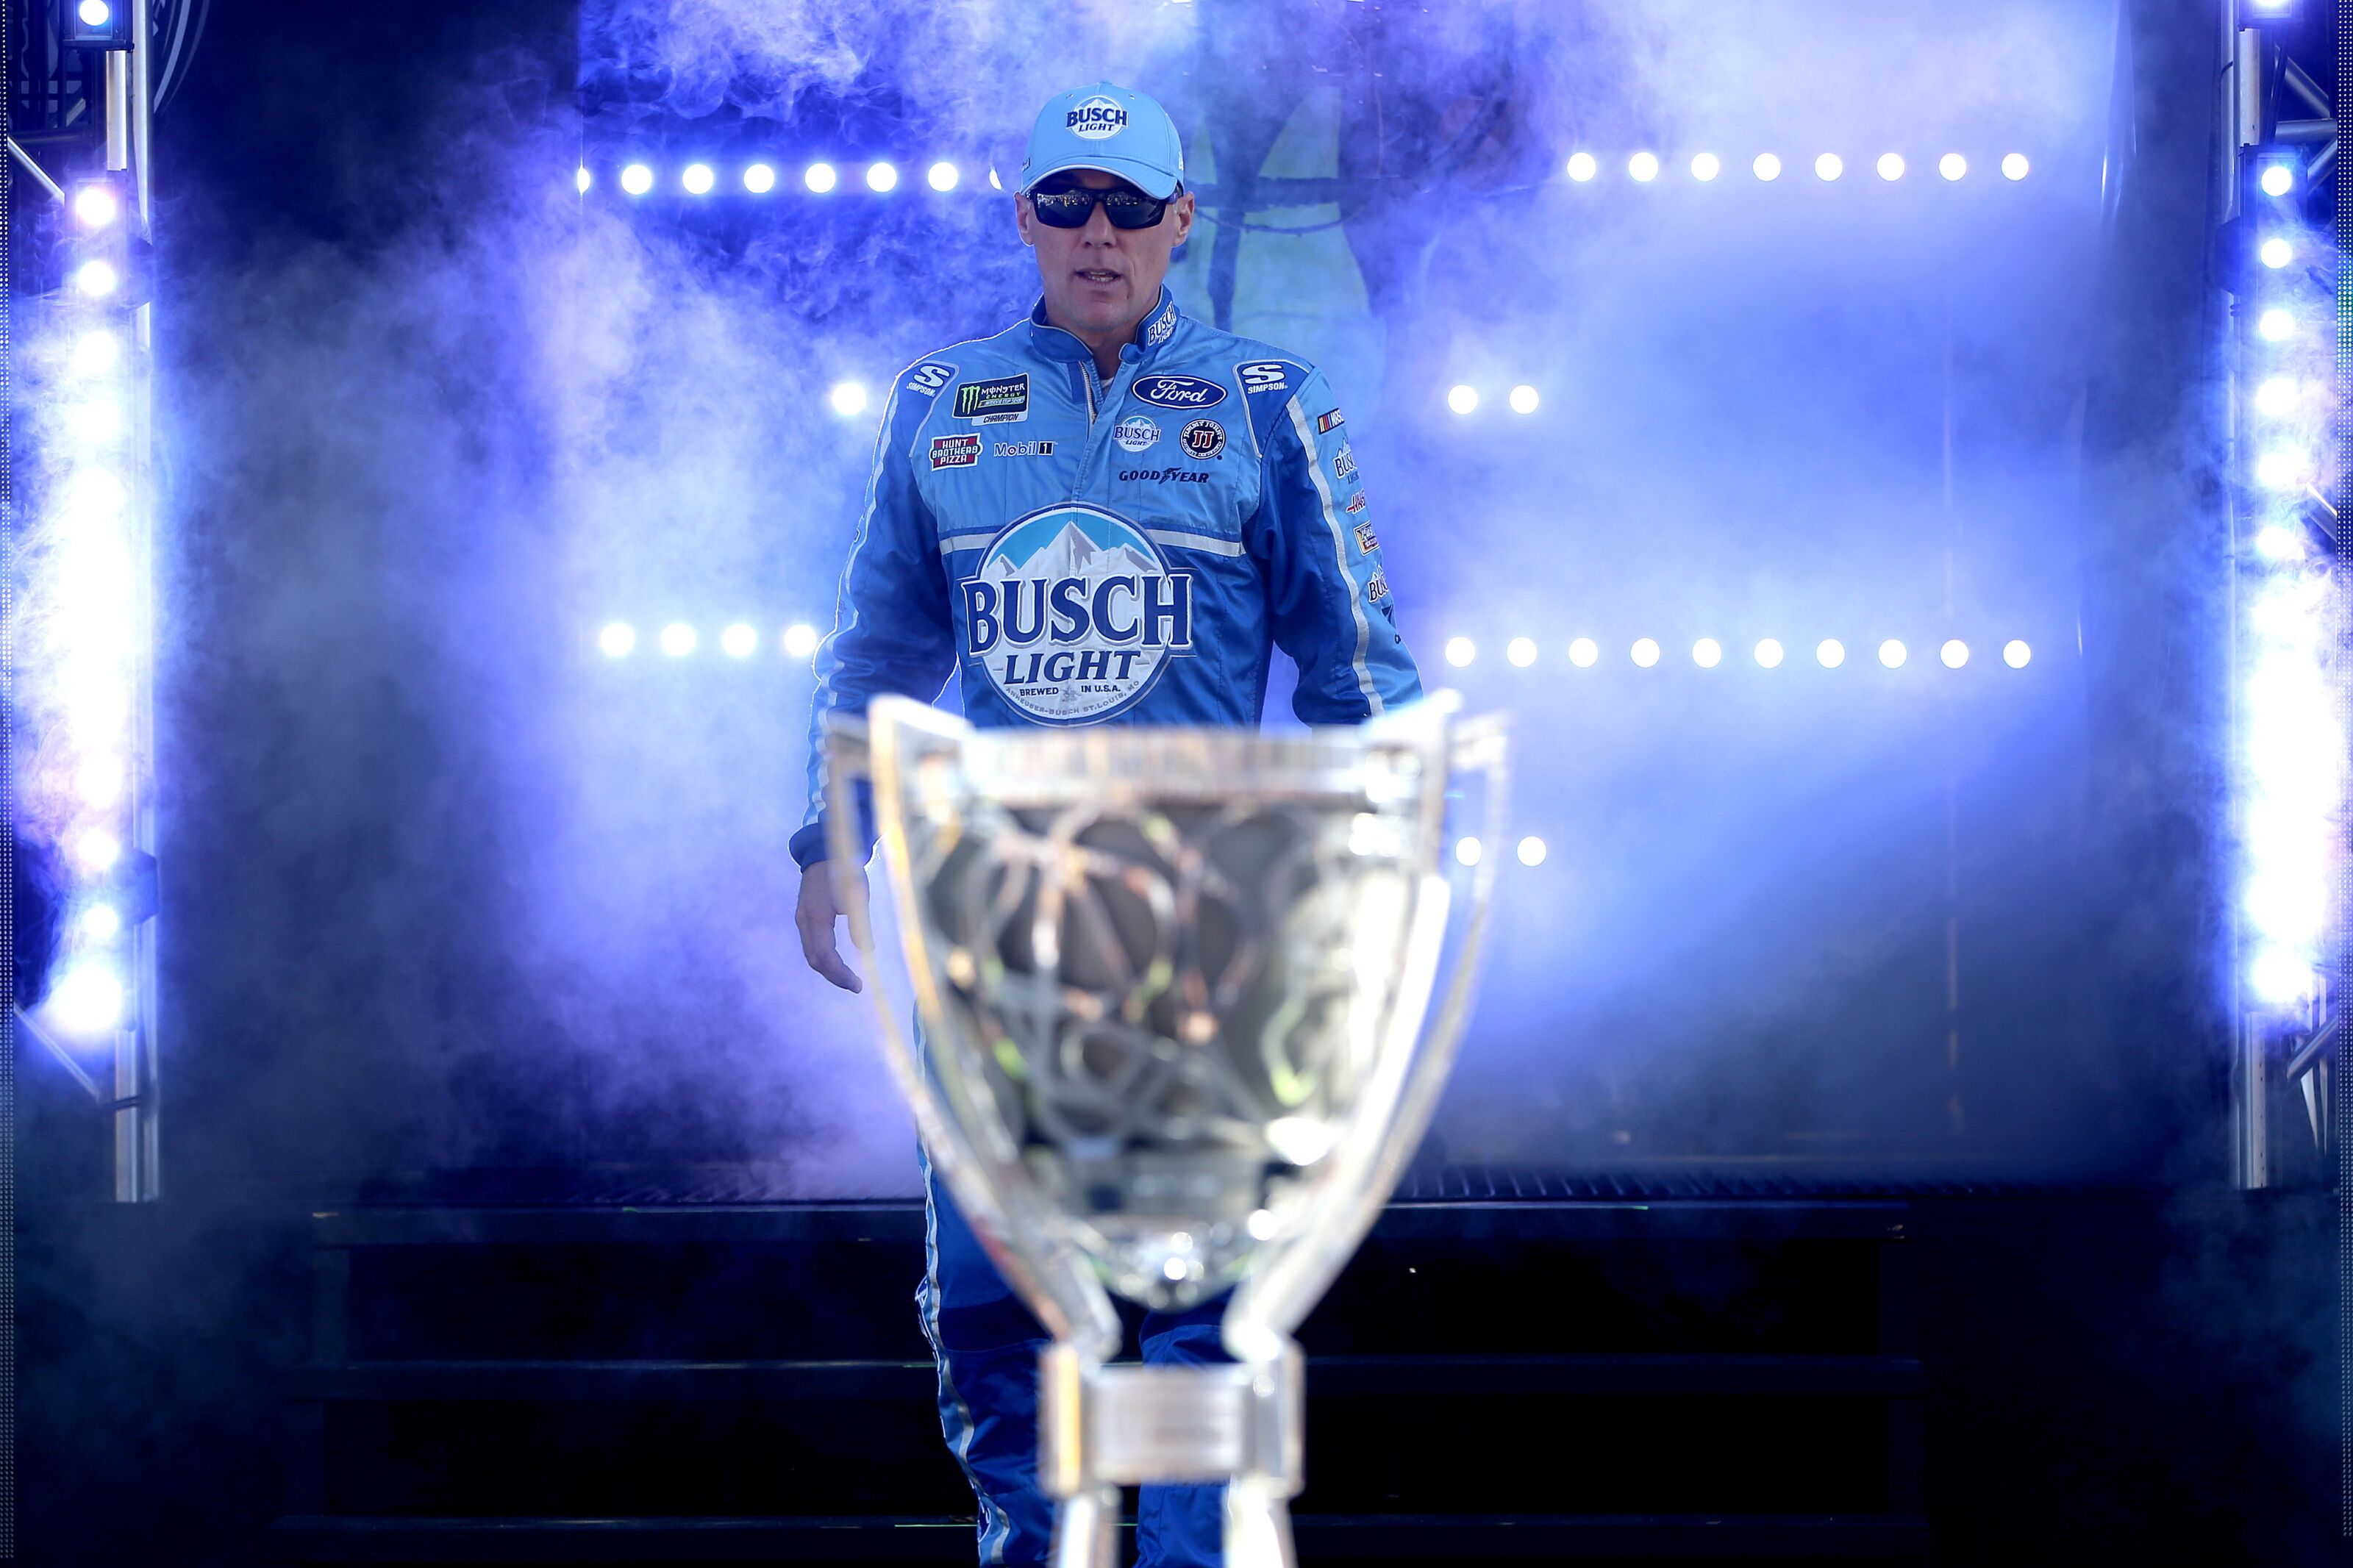 NASCAR: Kevin Harvick signs with Stewart-Haas Racing through 2023